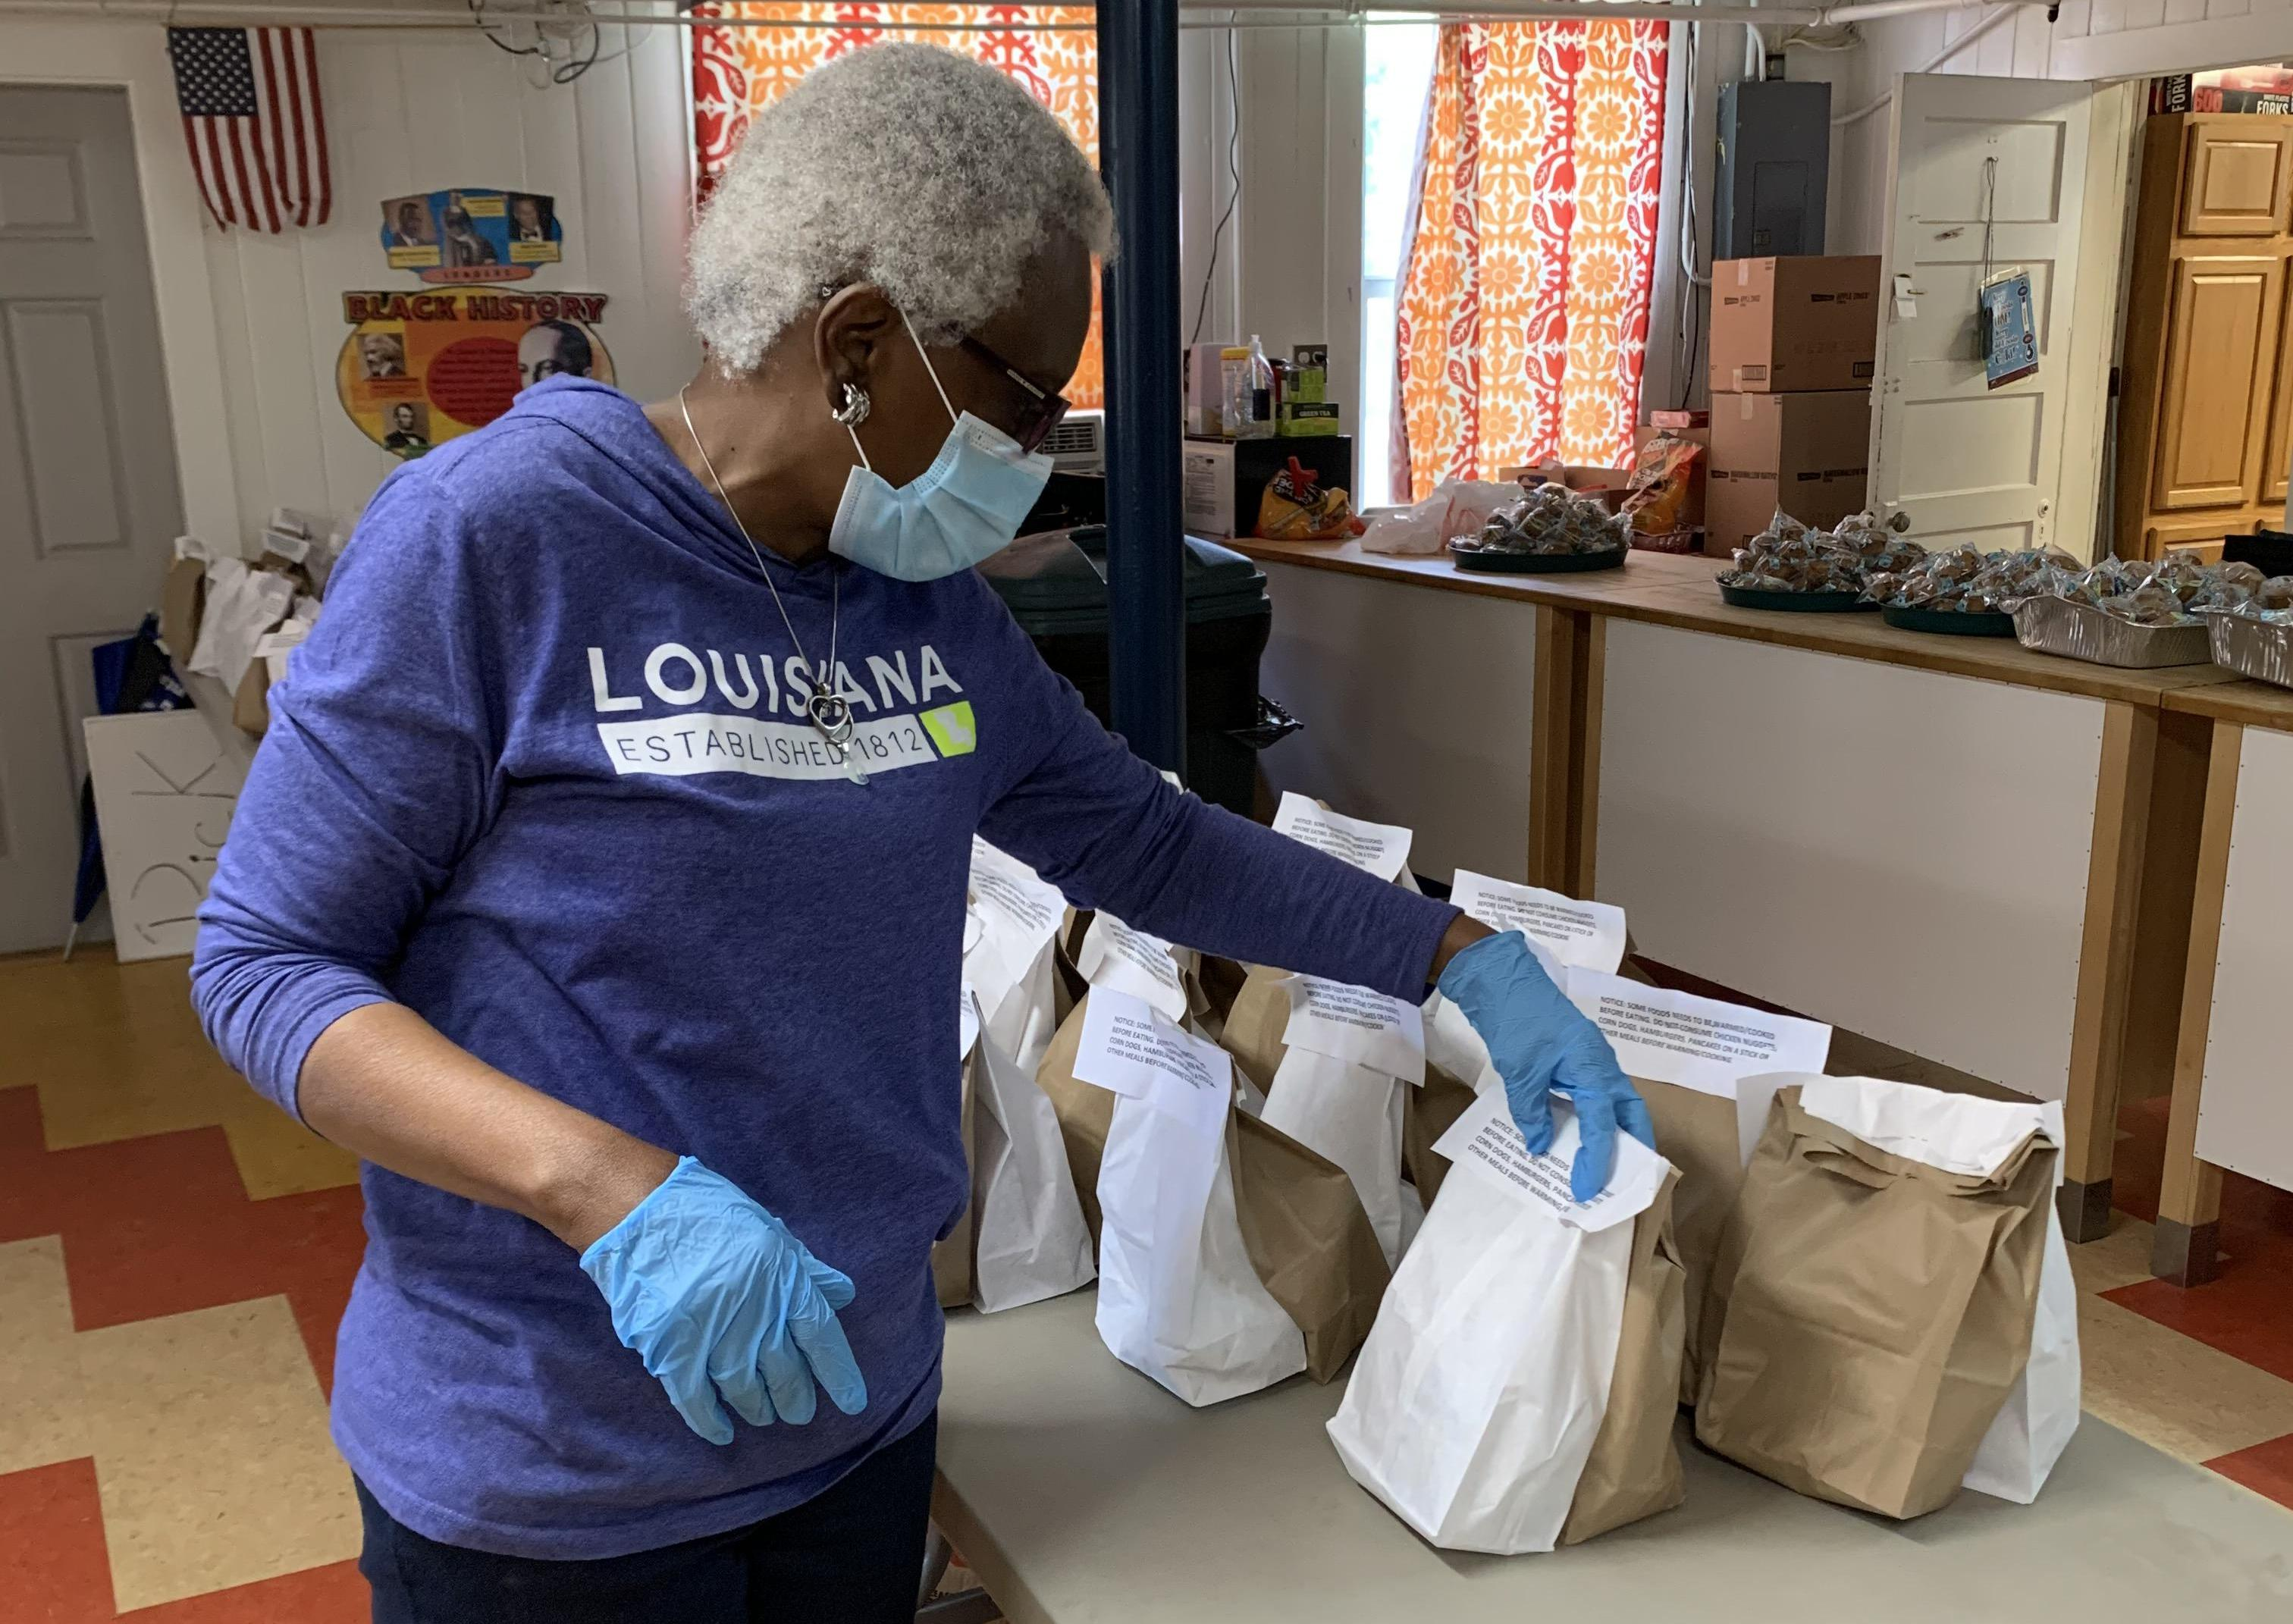 Volunteers at the Thensted Center in Grand Coteau, Louisiana, prepare sack lunches for children in the area during the COVIS-19 pandemic